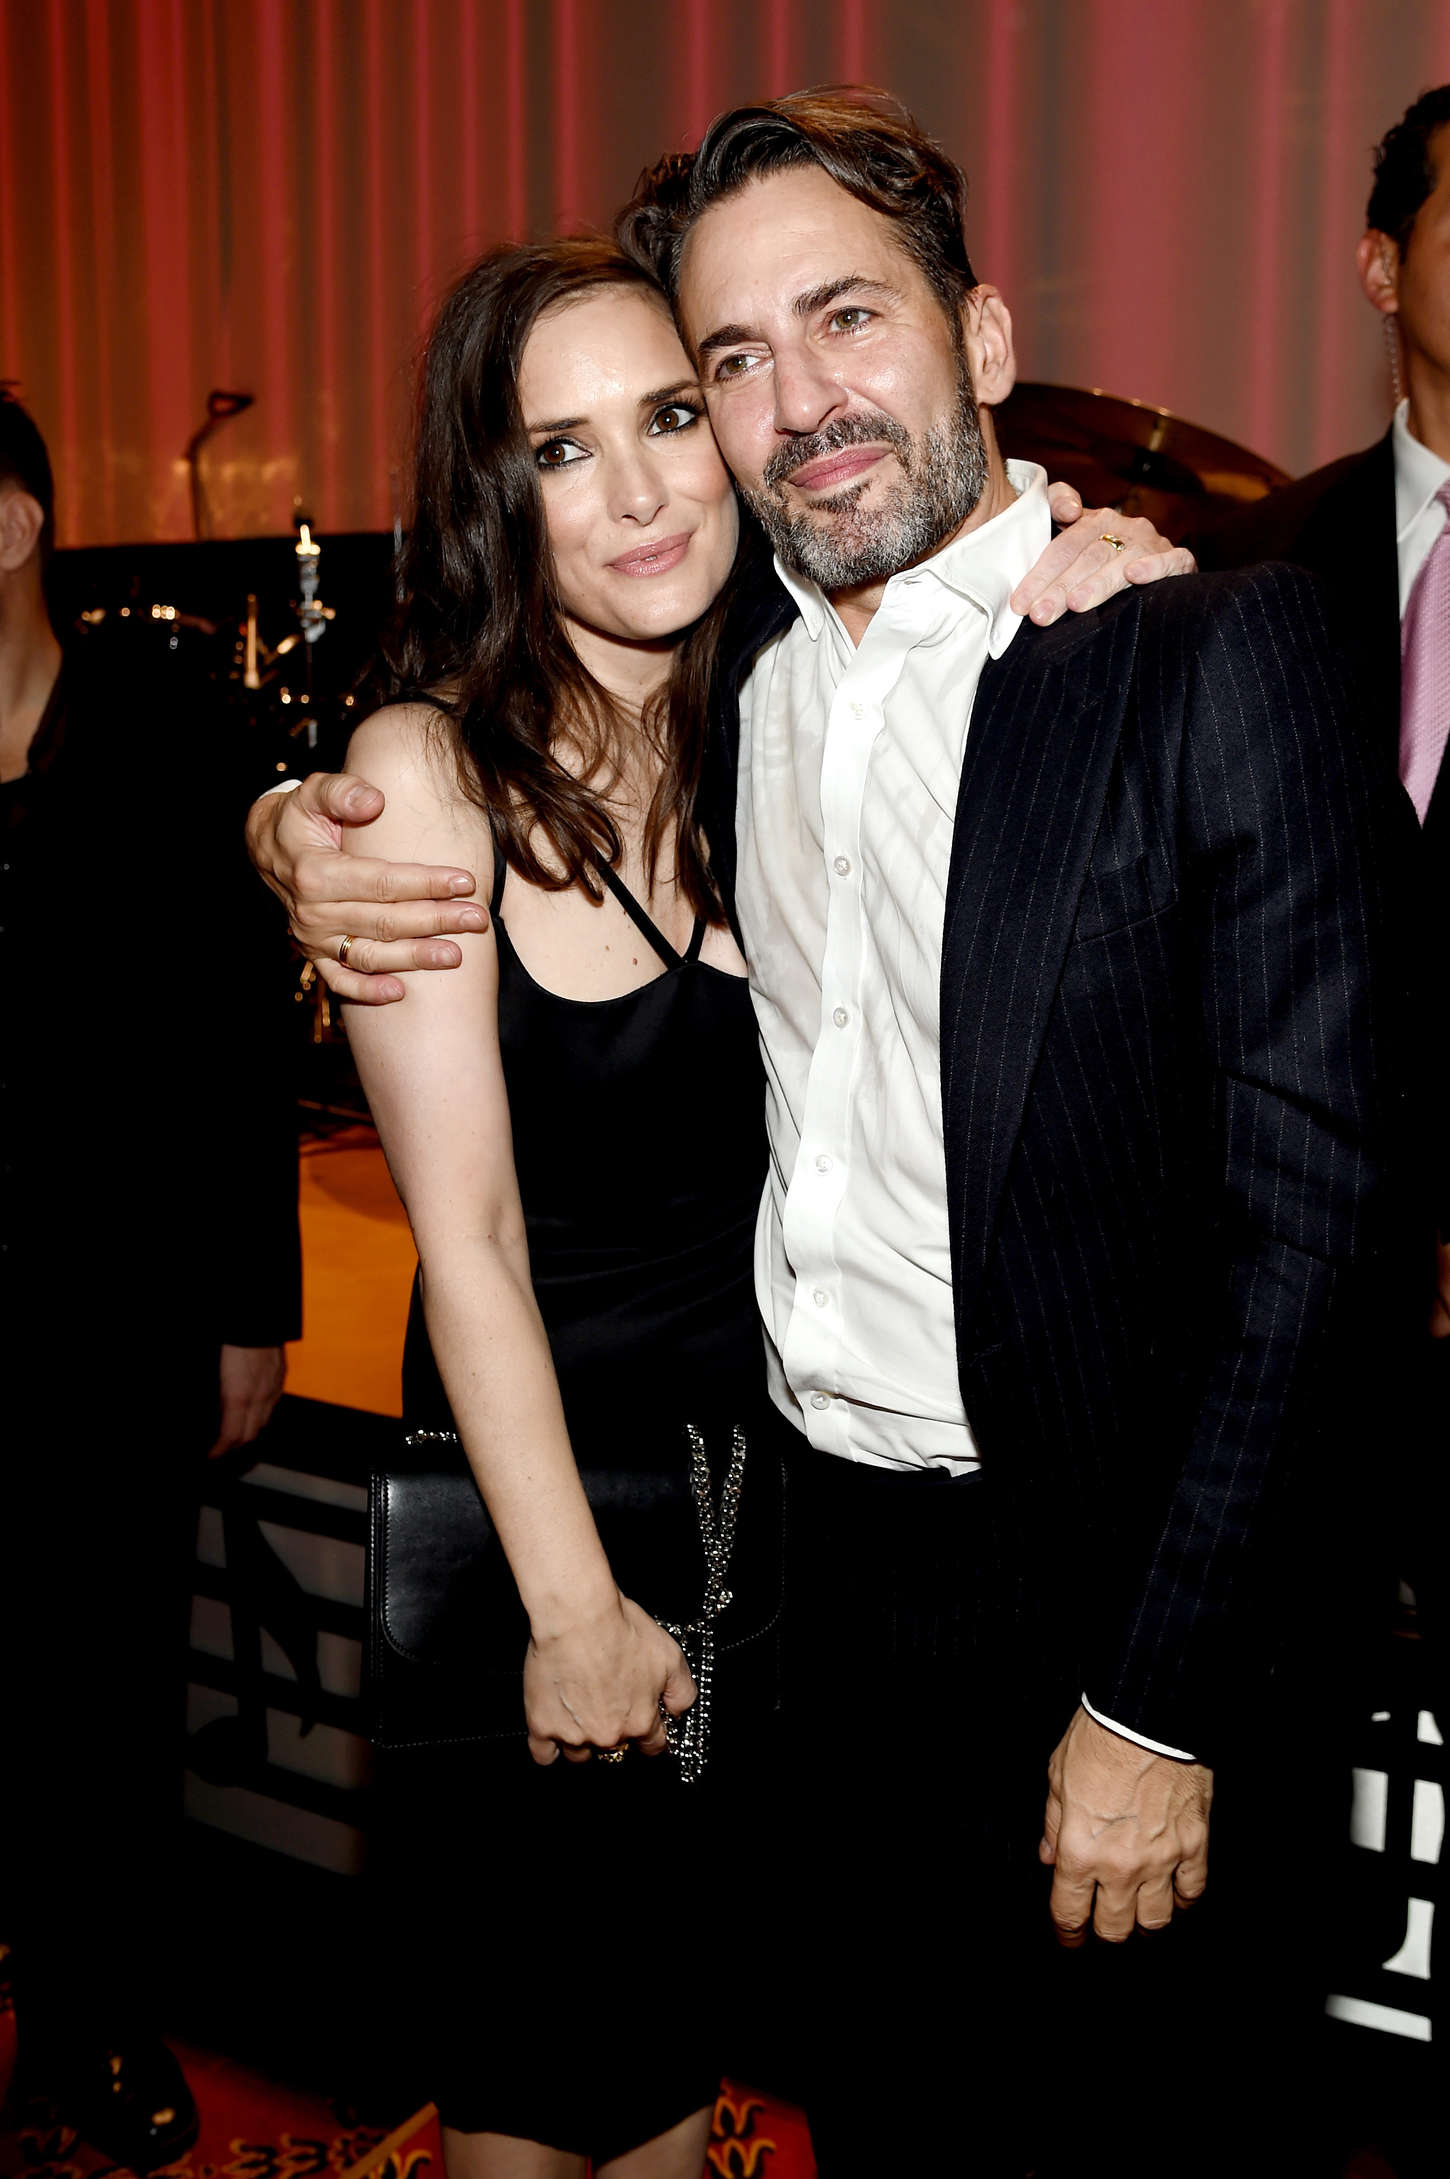 Winona Ryder Marc Jacobs Fashion Show Spring NYFW in New York